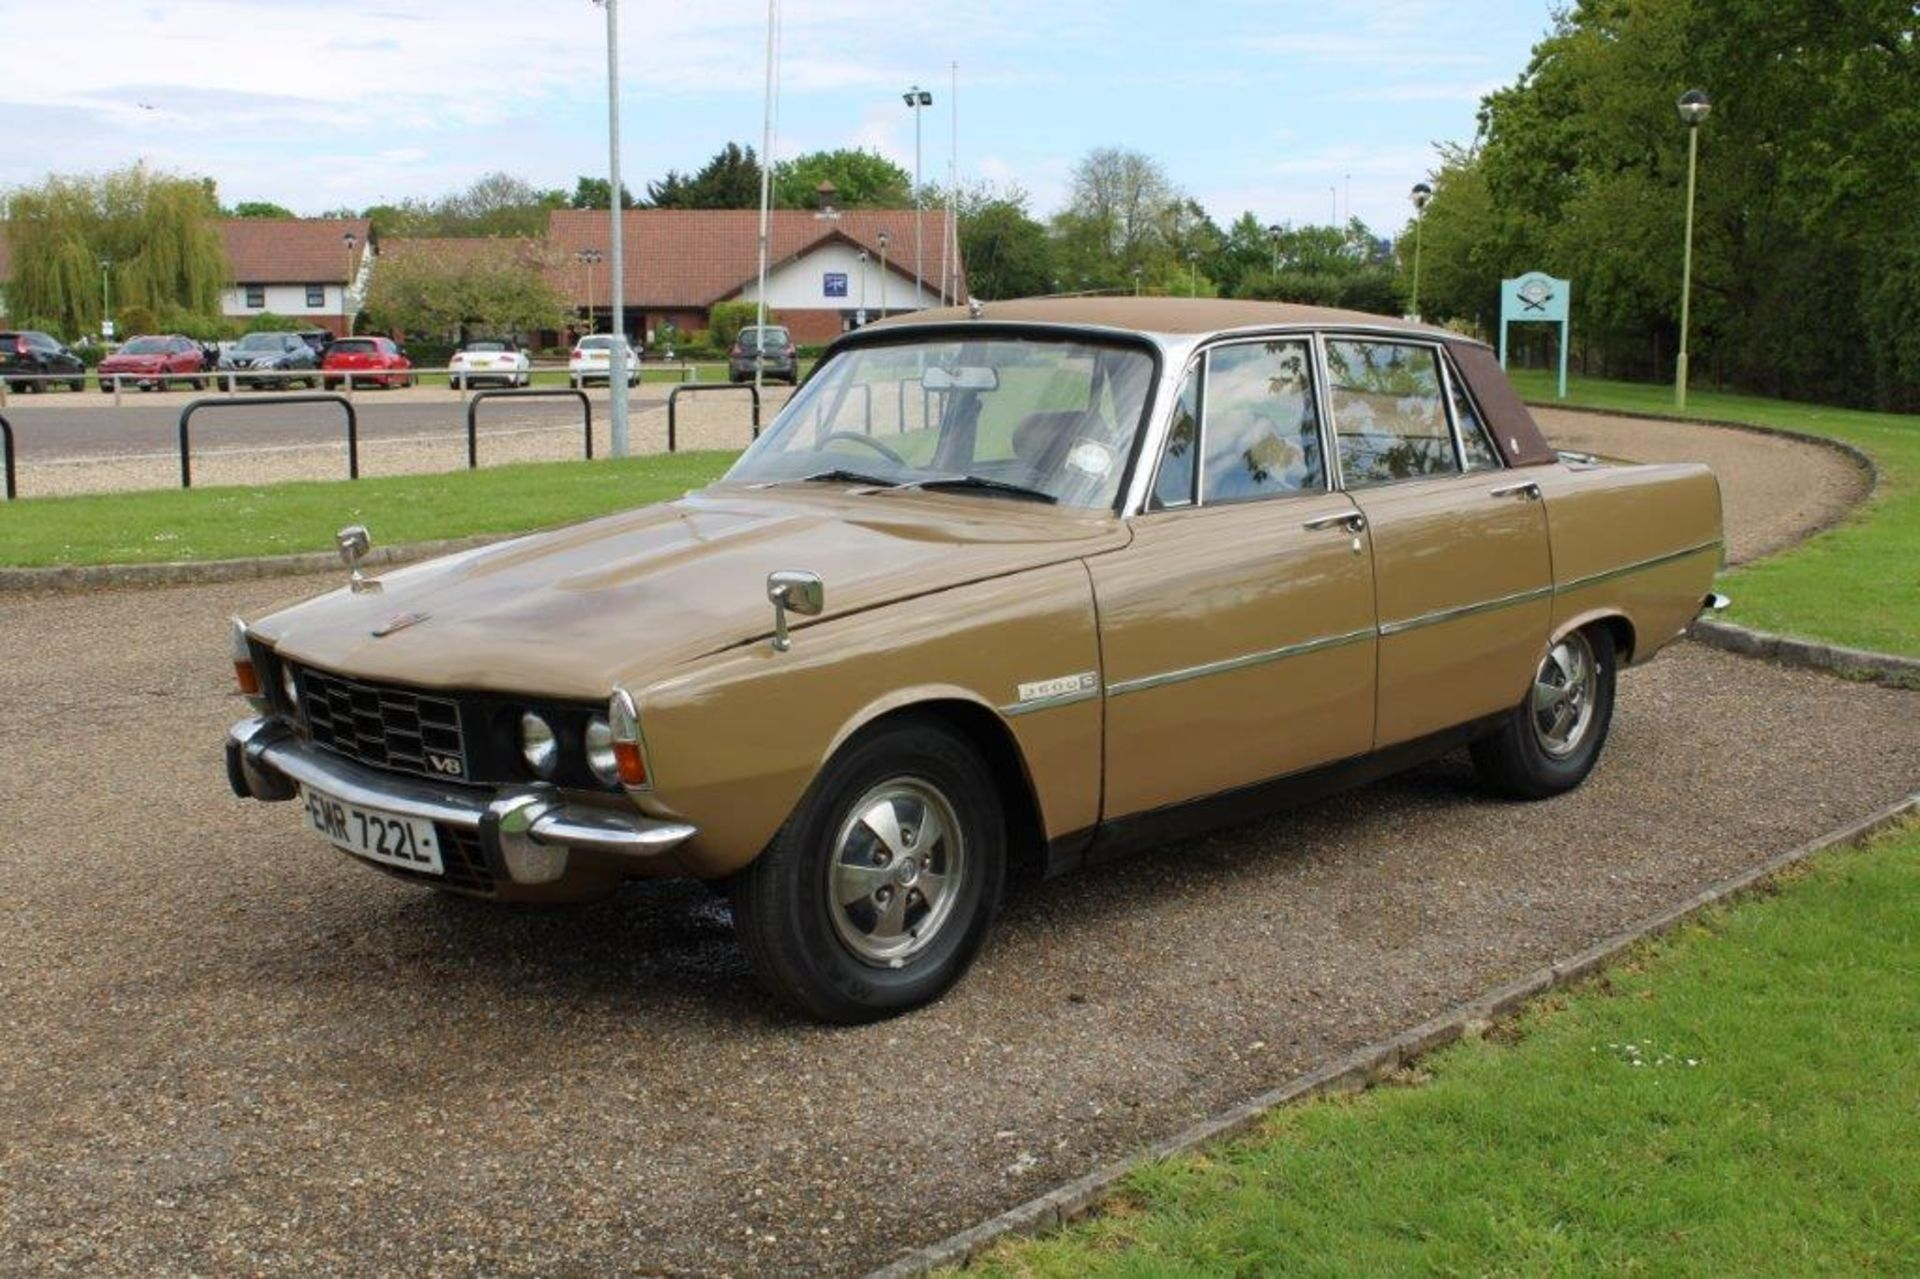 1970 Rover P6 3500 S 1 of 6 development cars - Image 3 of 21